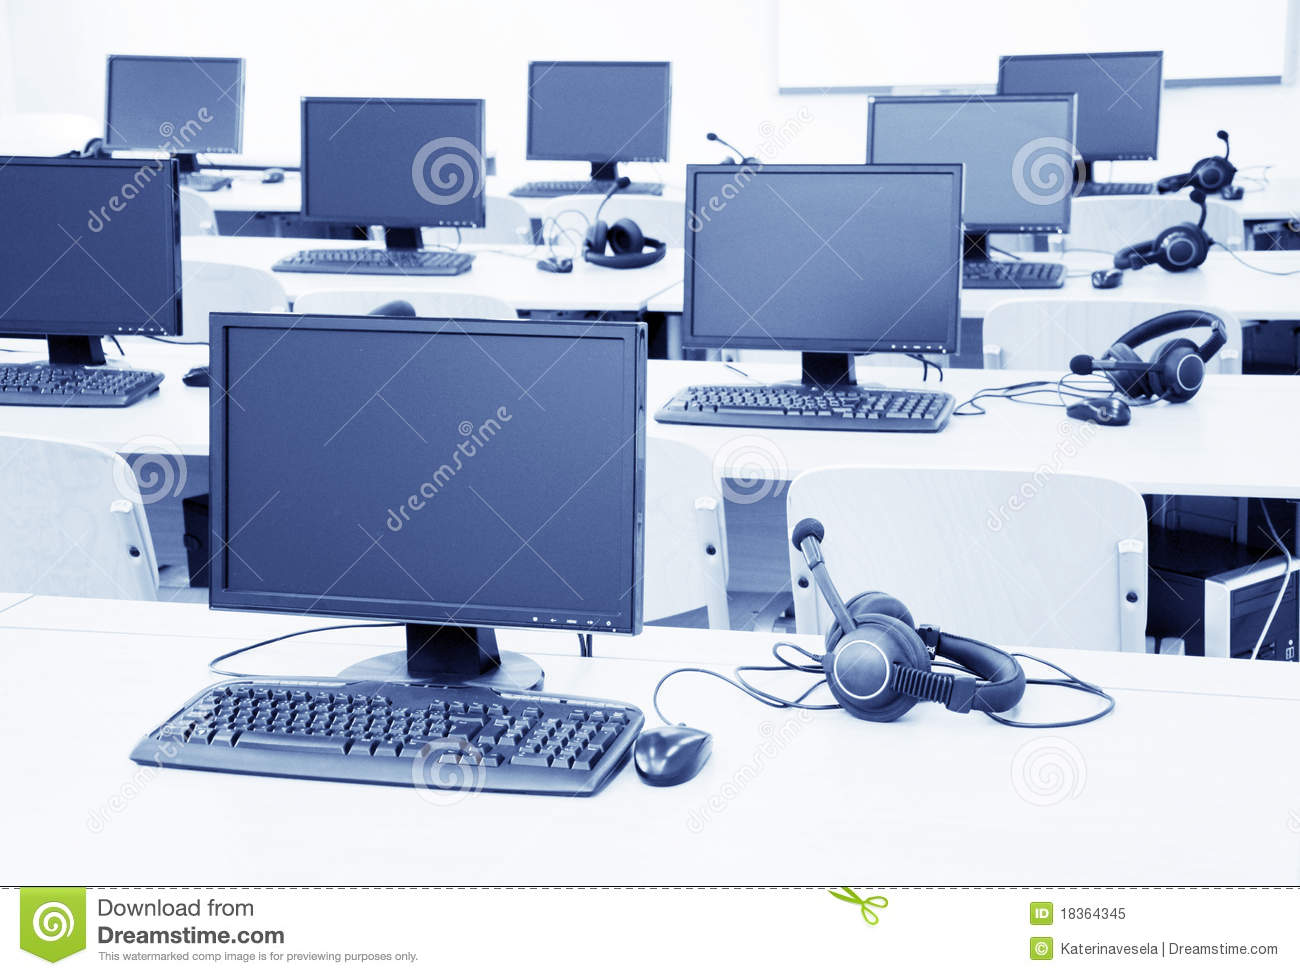 office chairs unlimited hanging chair gauteng computer classroom royalty free stock photo - image: 18364345